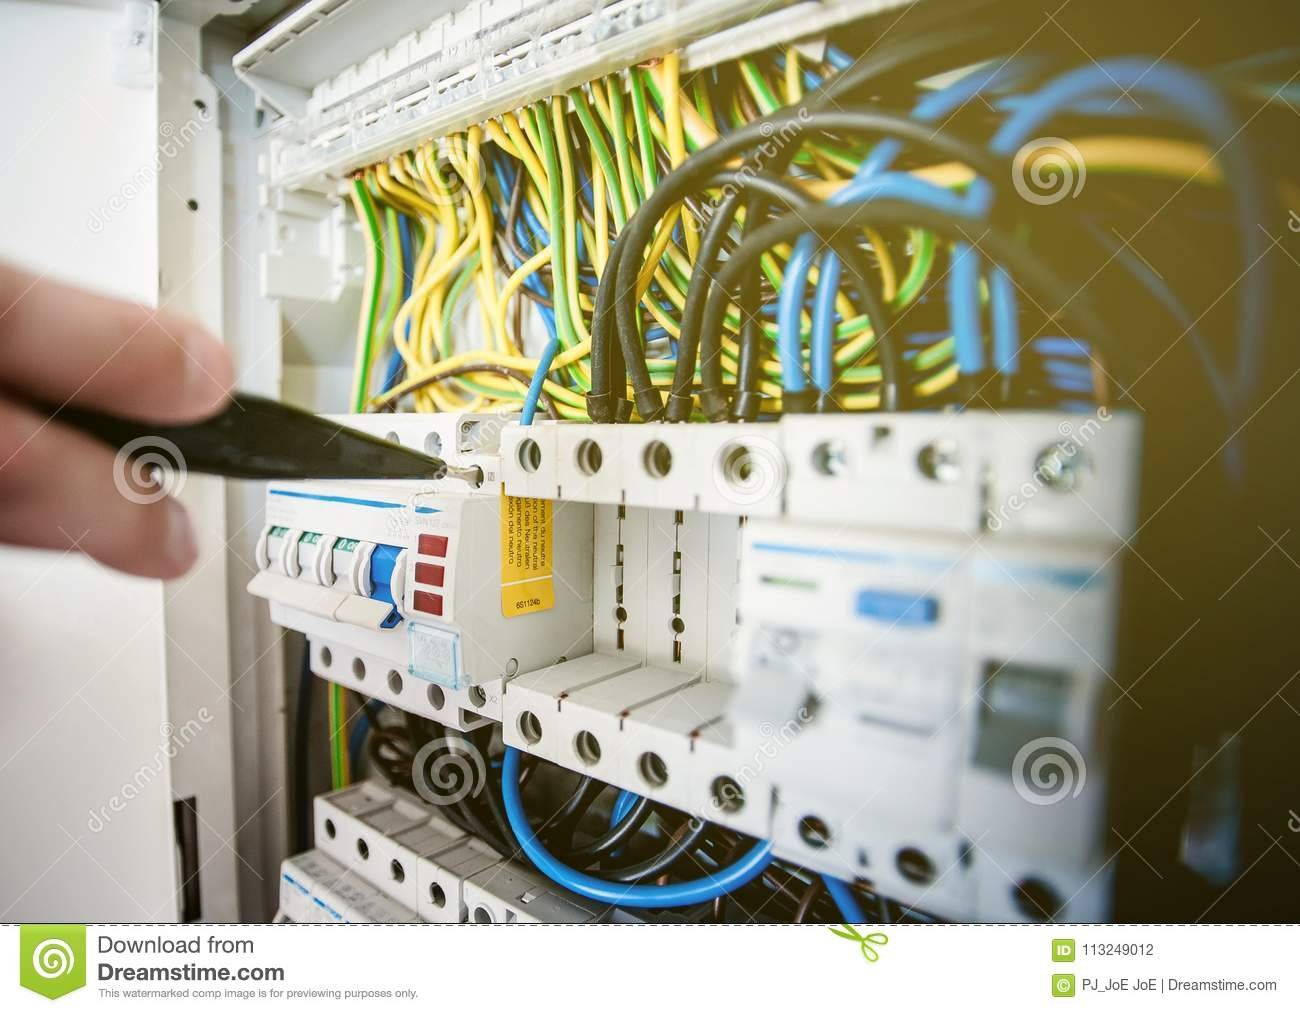 hight resolution of electrical terminal in junction box and service by technician electrical device install in control panel for support program and control function by plc